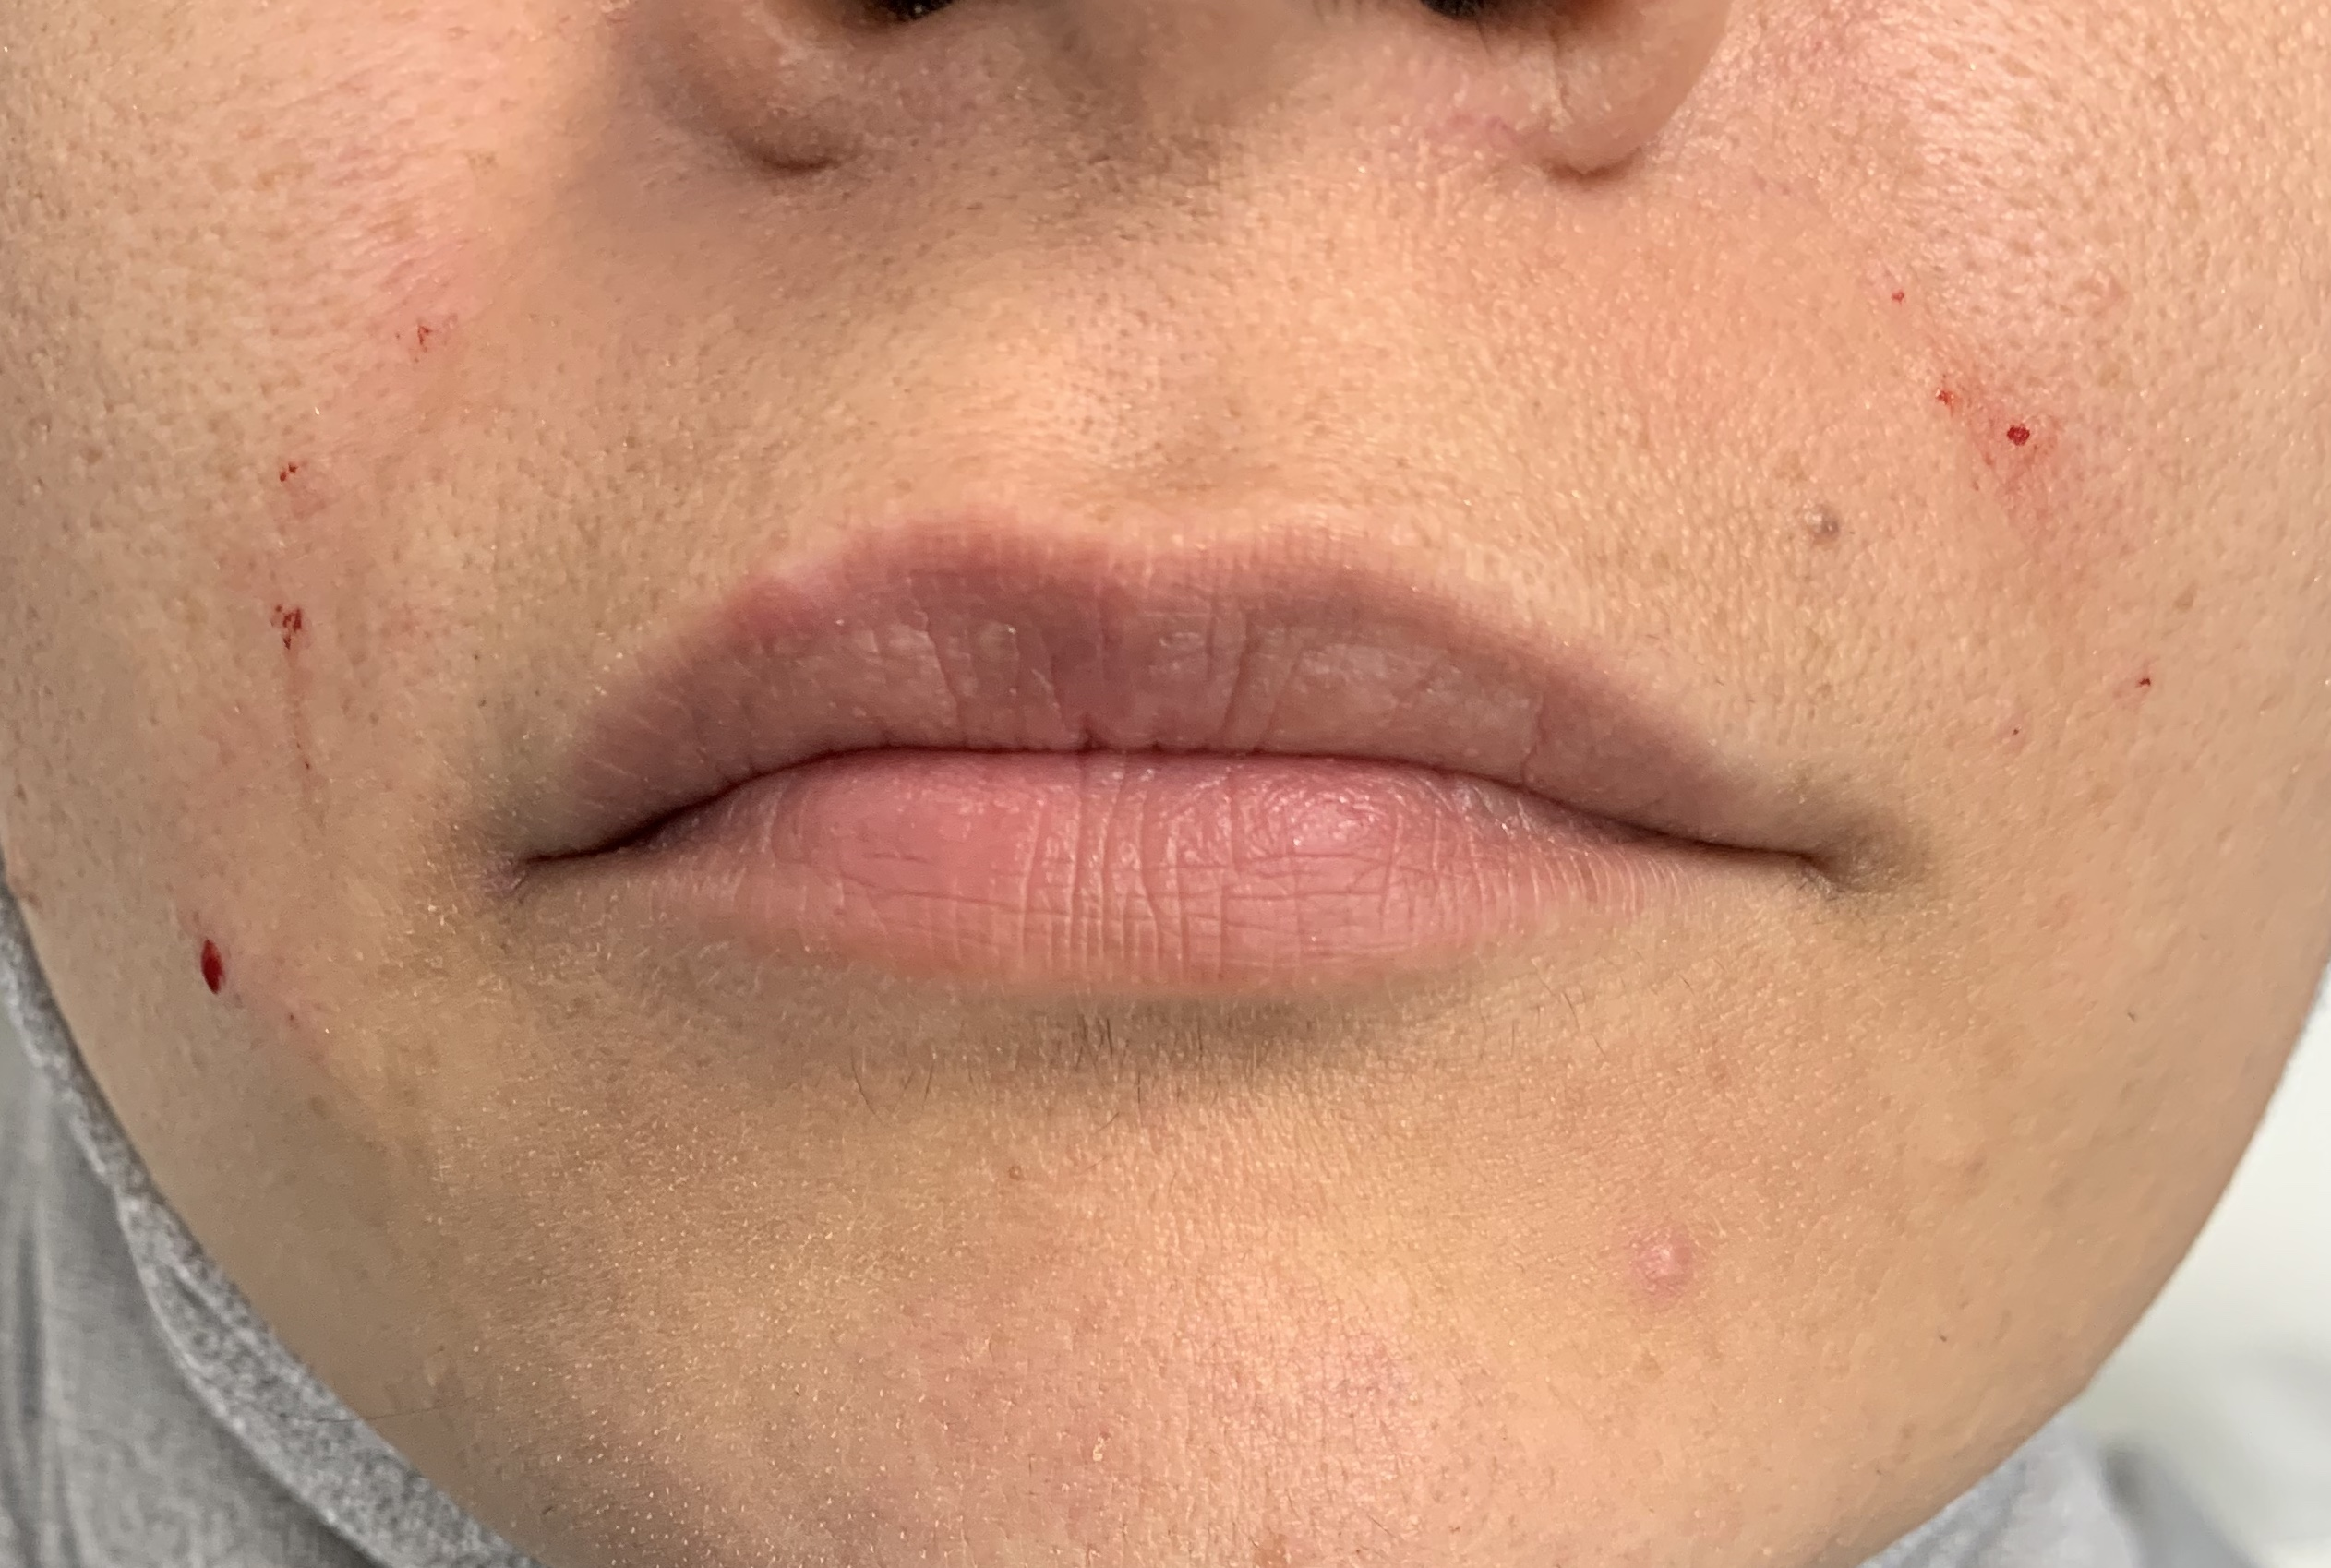 Before Lip & Nasolabial dermal fillers!